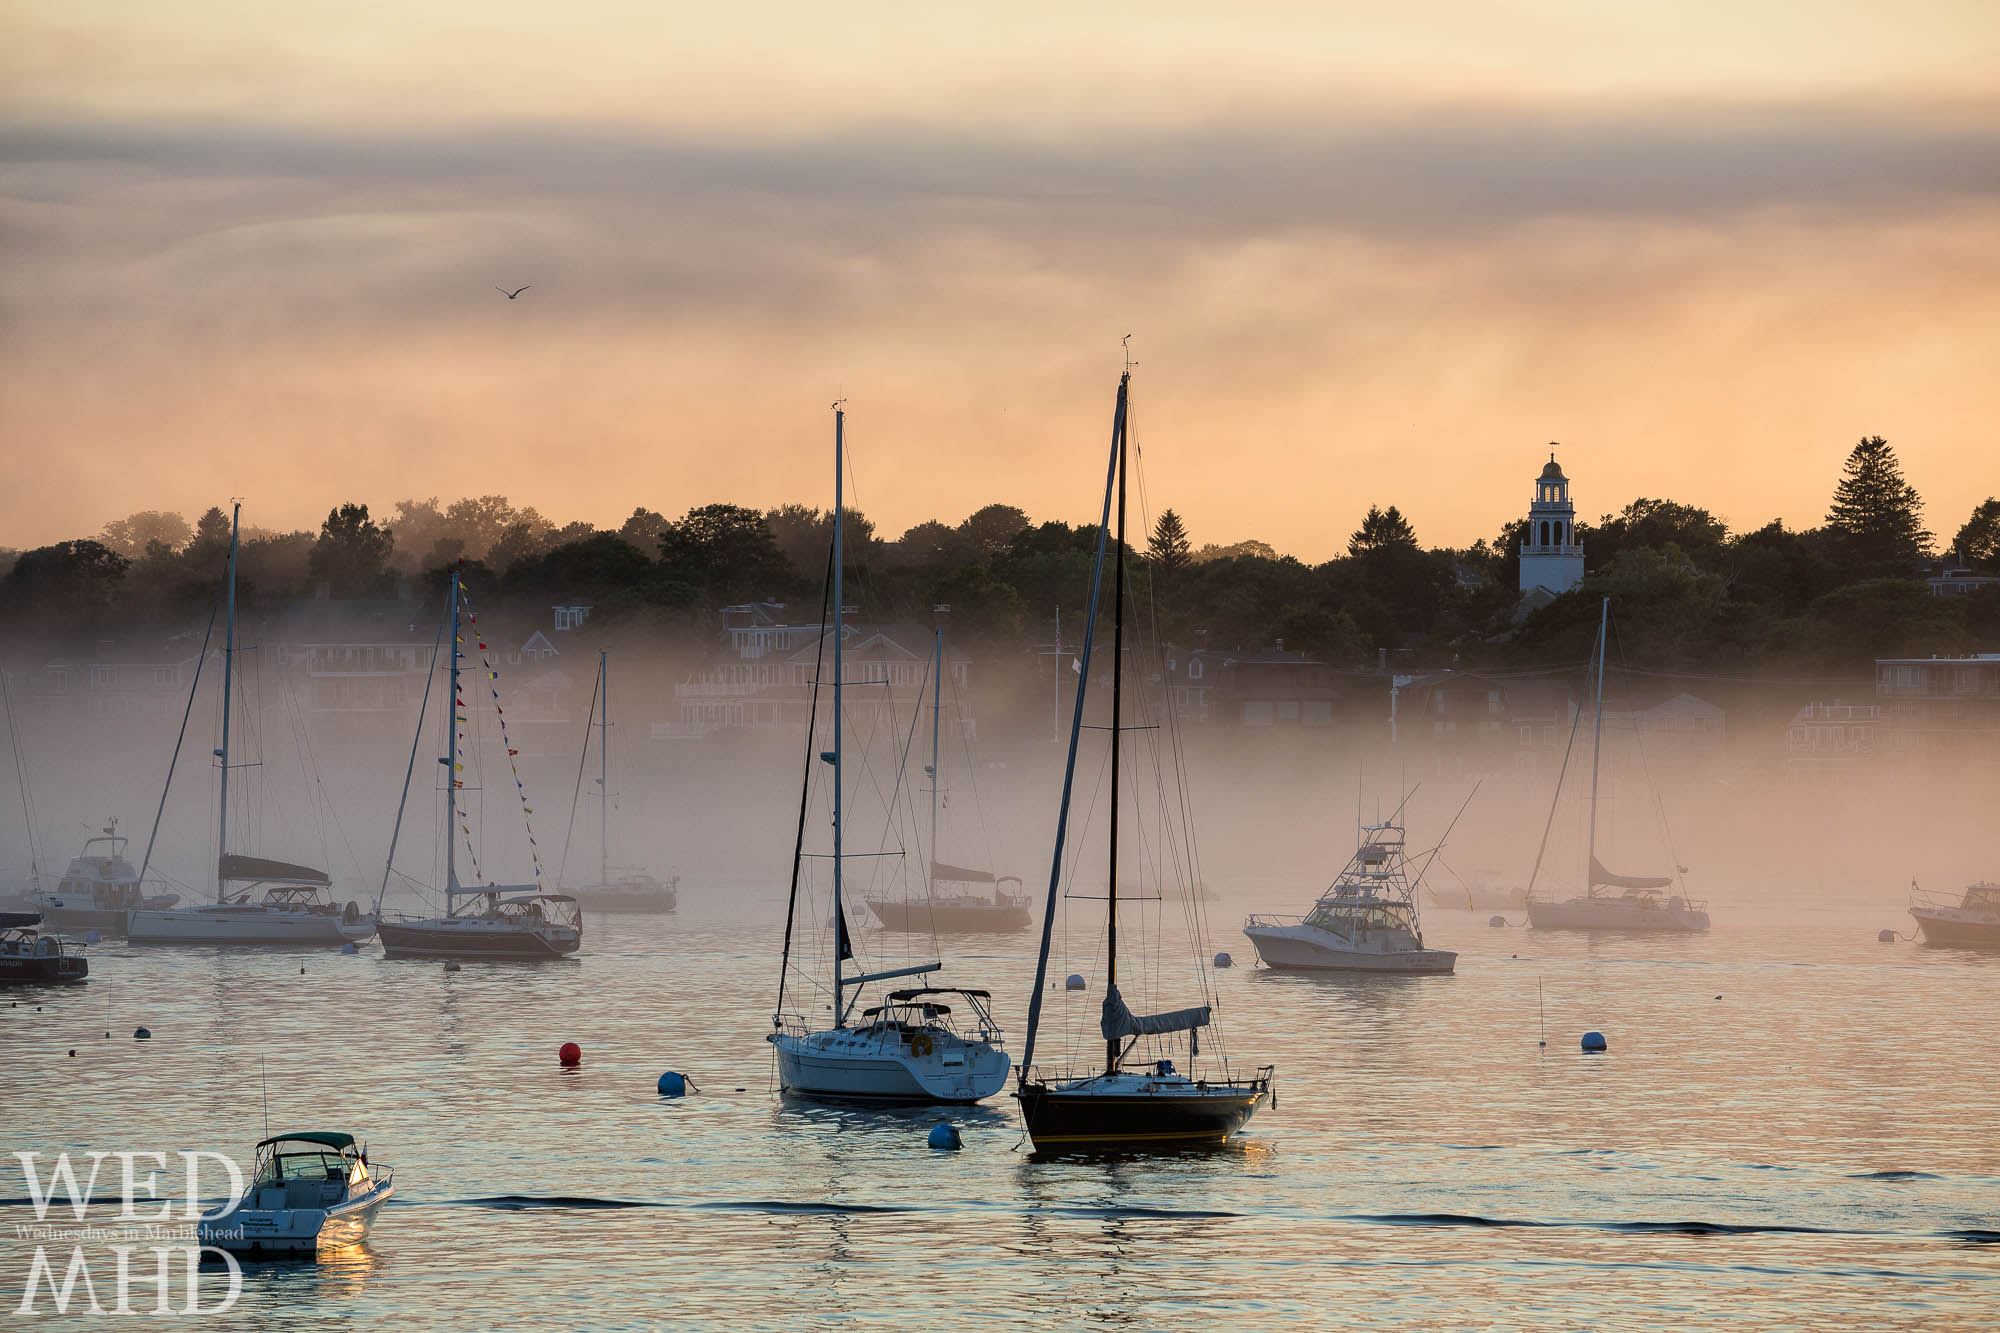 Remembering humid days and foggy nights in Marblehead Harbor with boats moored in front of Old North Church